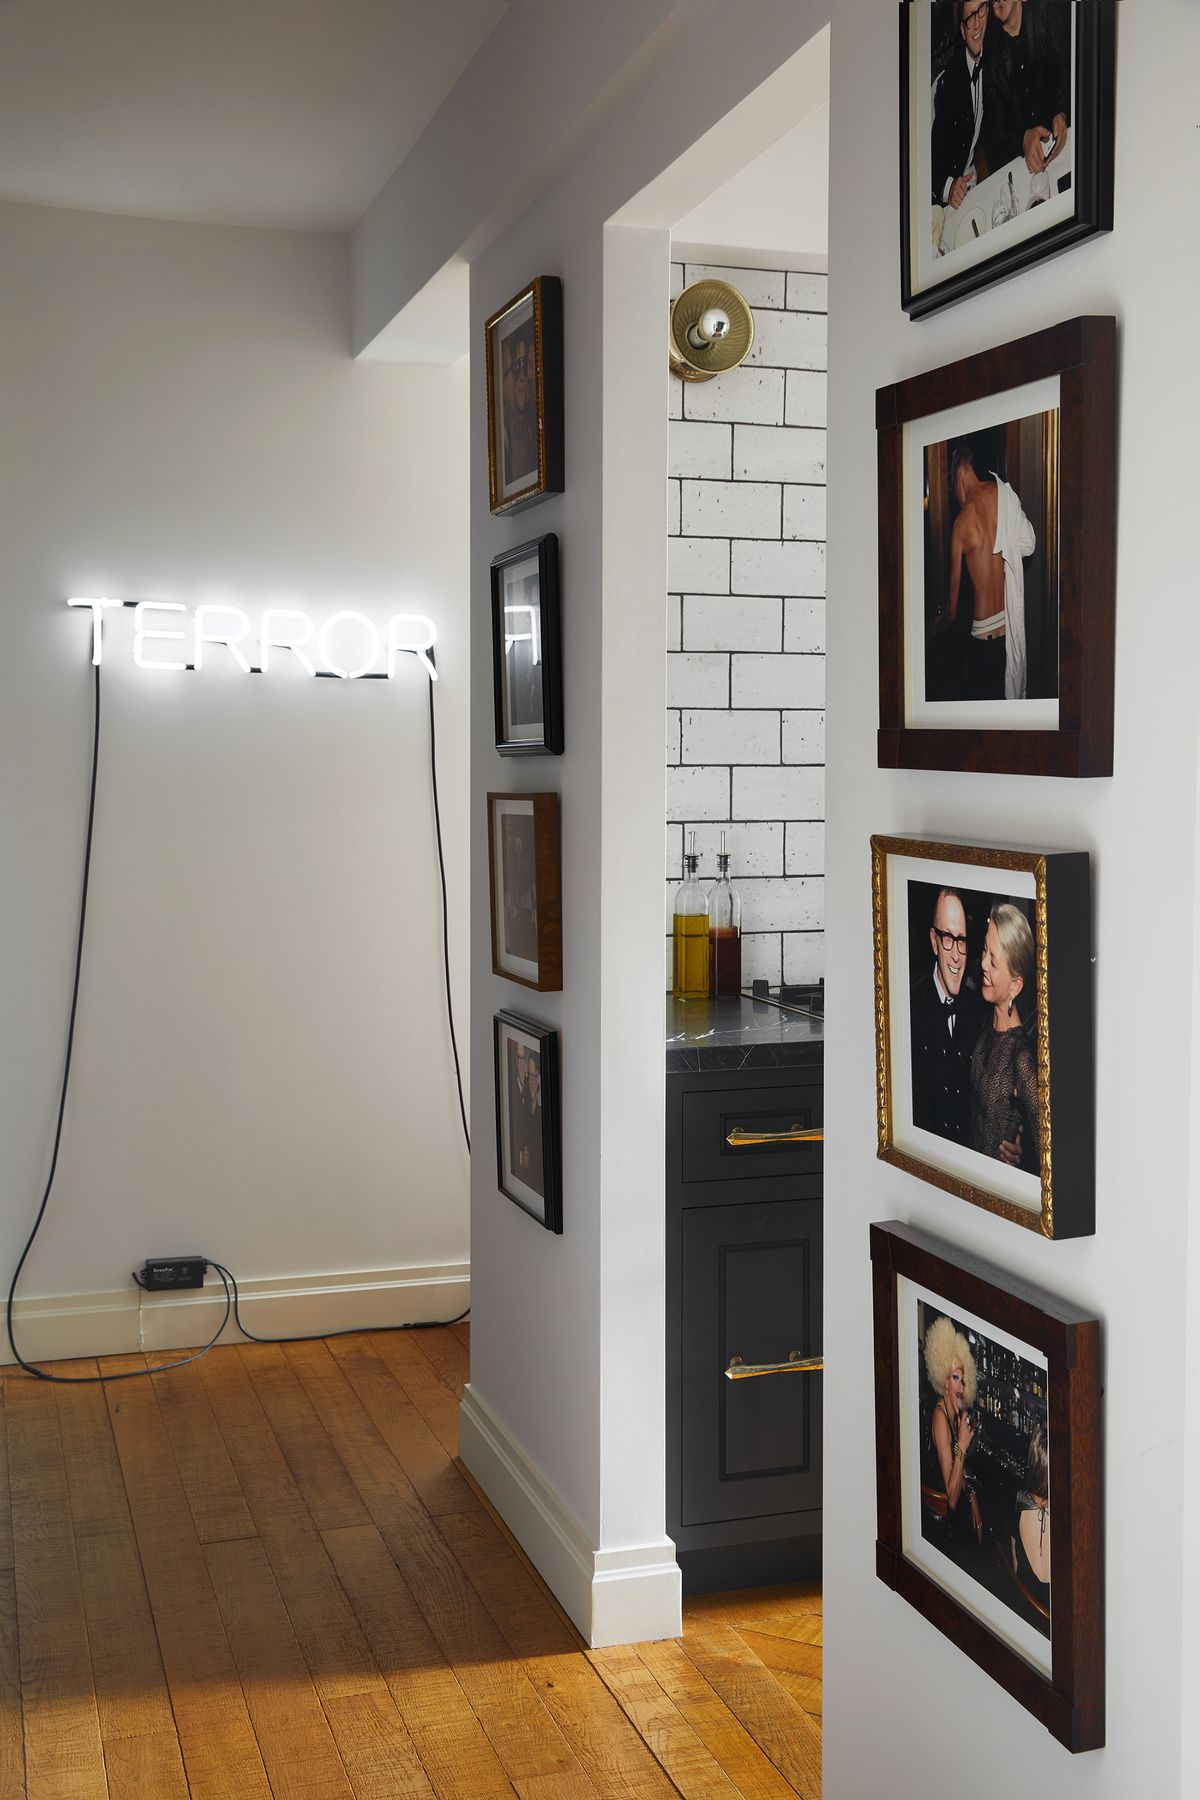 A hallway has a neon sign and many pictures from the designer's 50th birthday party.